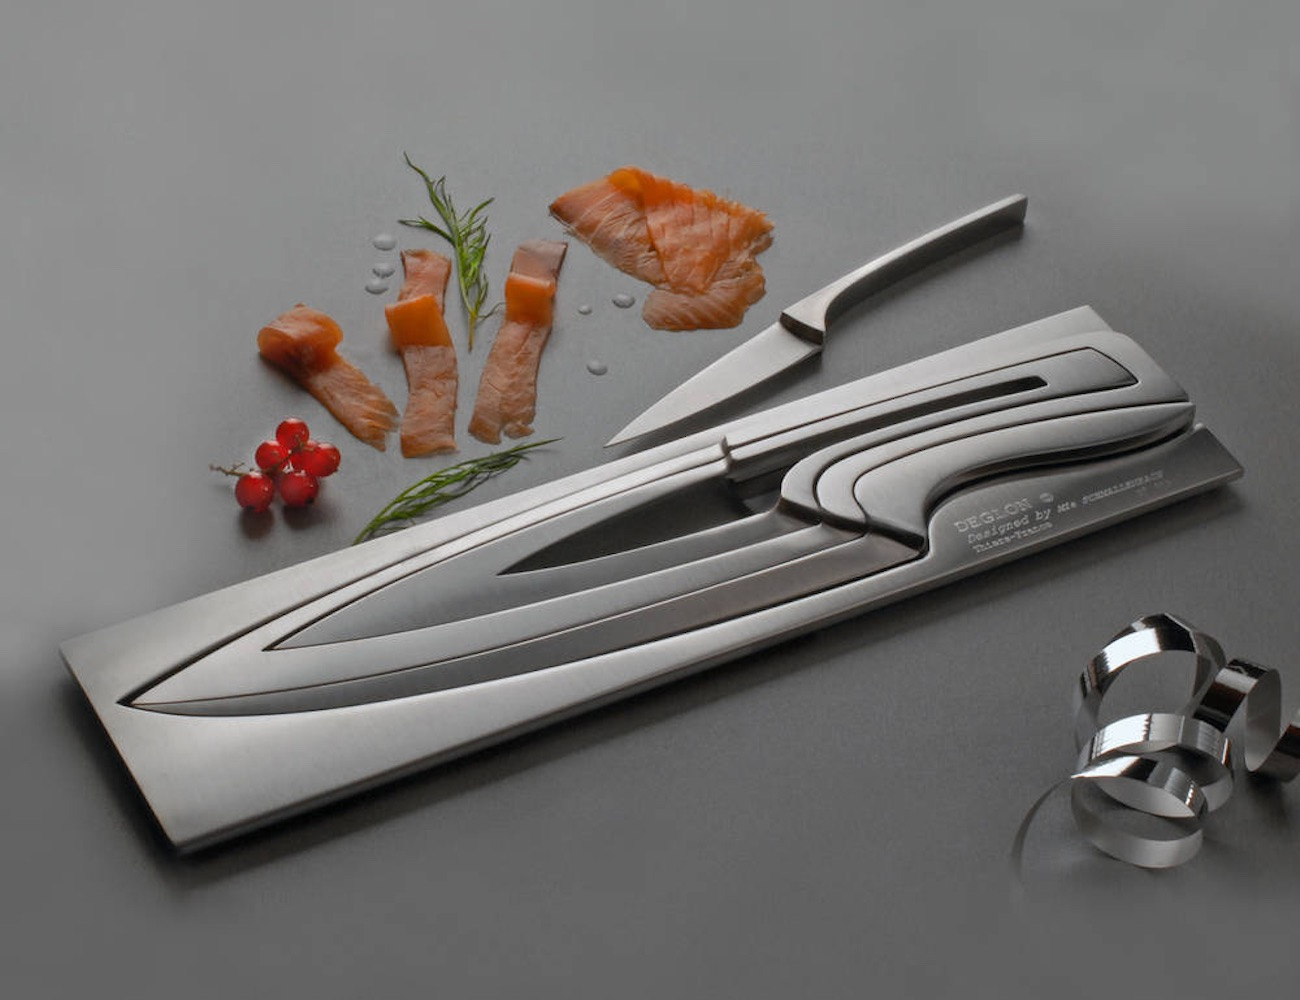 Deglon Knives – High Quality Knives With A Solid Reputation